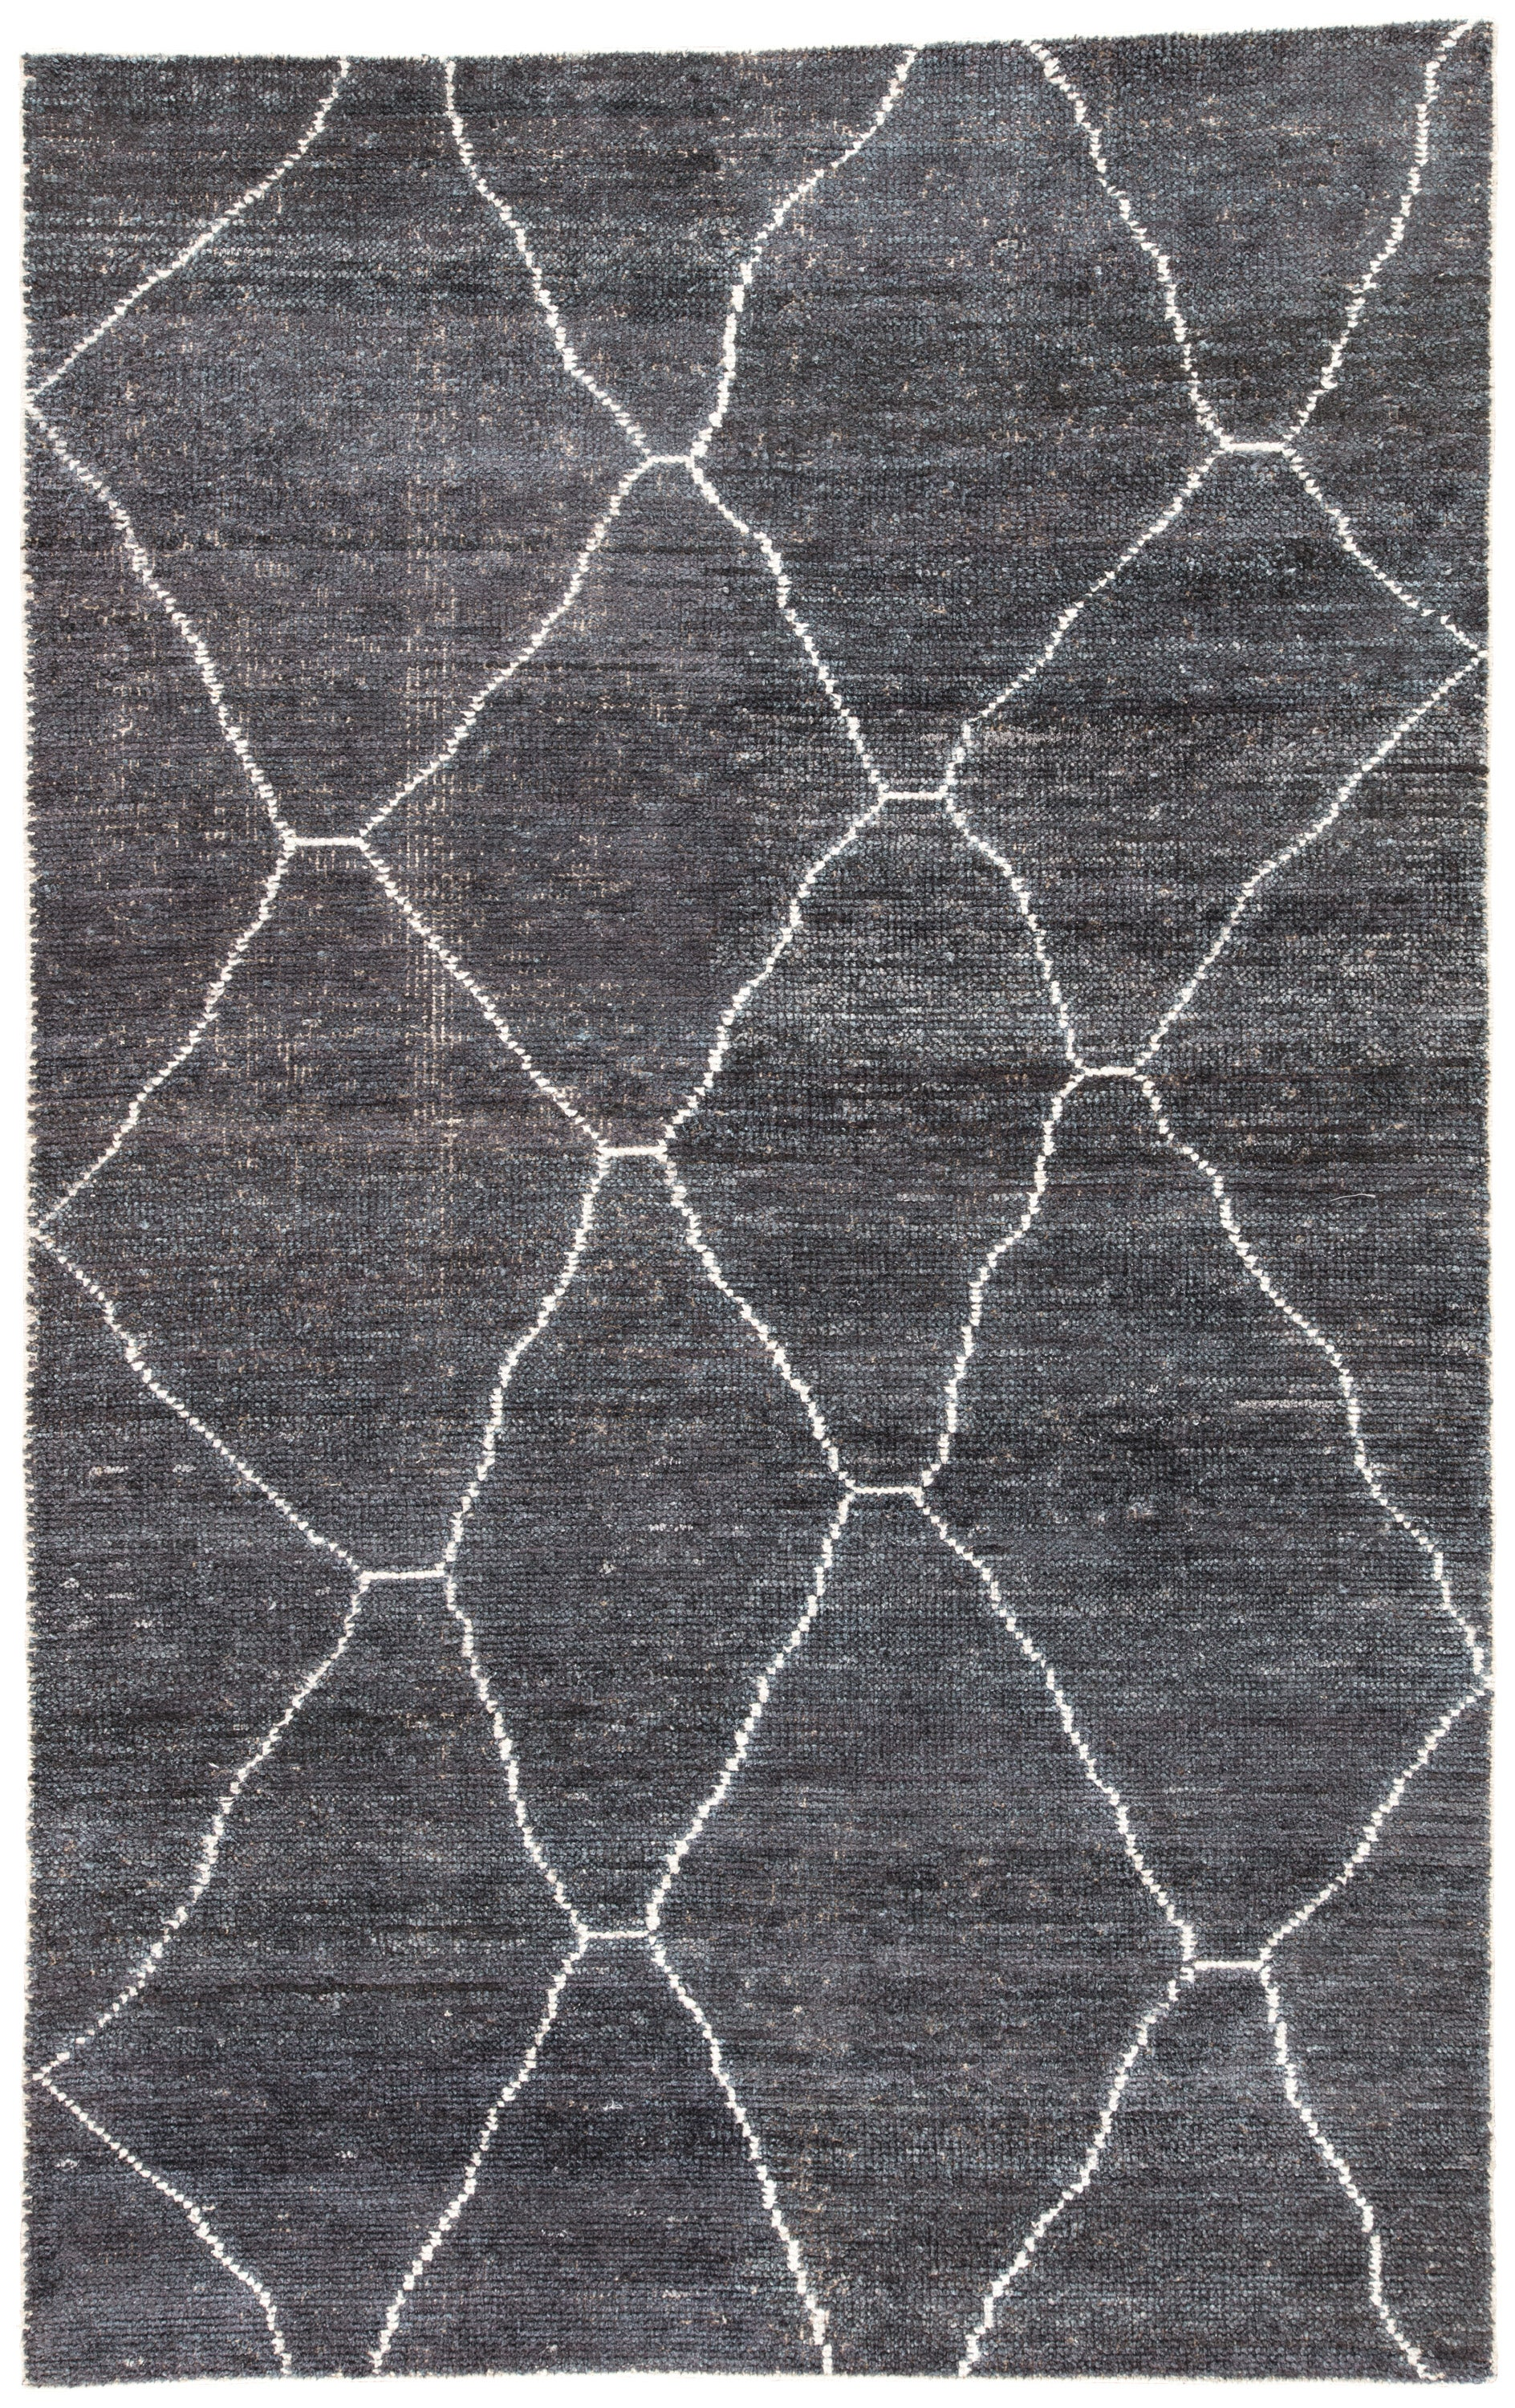 Rectangle Darkgray Geometric Hand Loomed Blends Persian & Moroccan recommended for Bedroom, Bathroom, Dining Room, Office, Hallway, Living Room